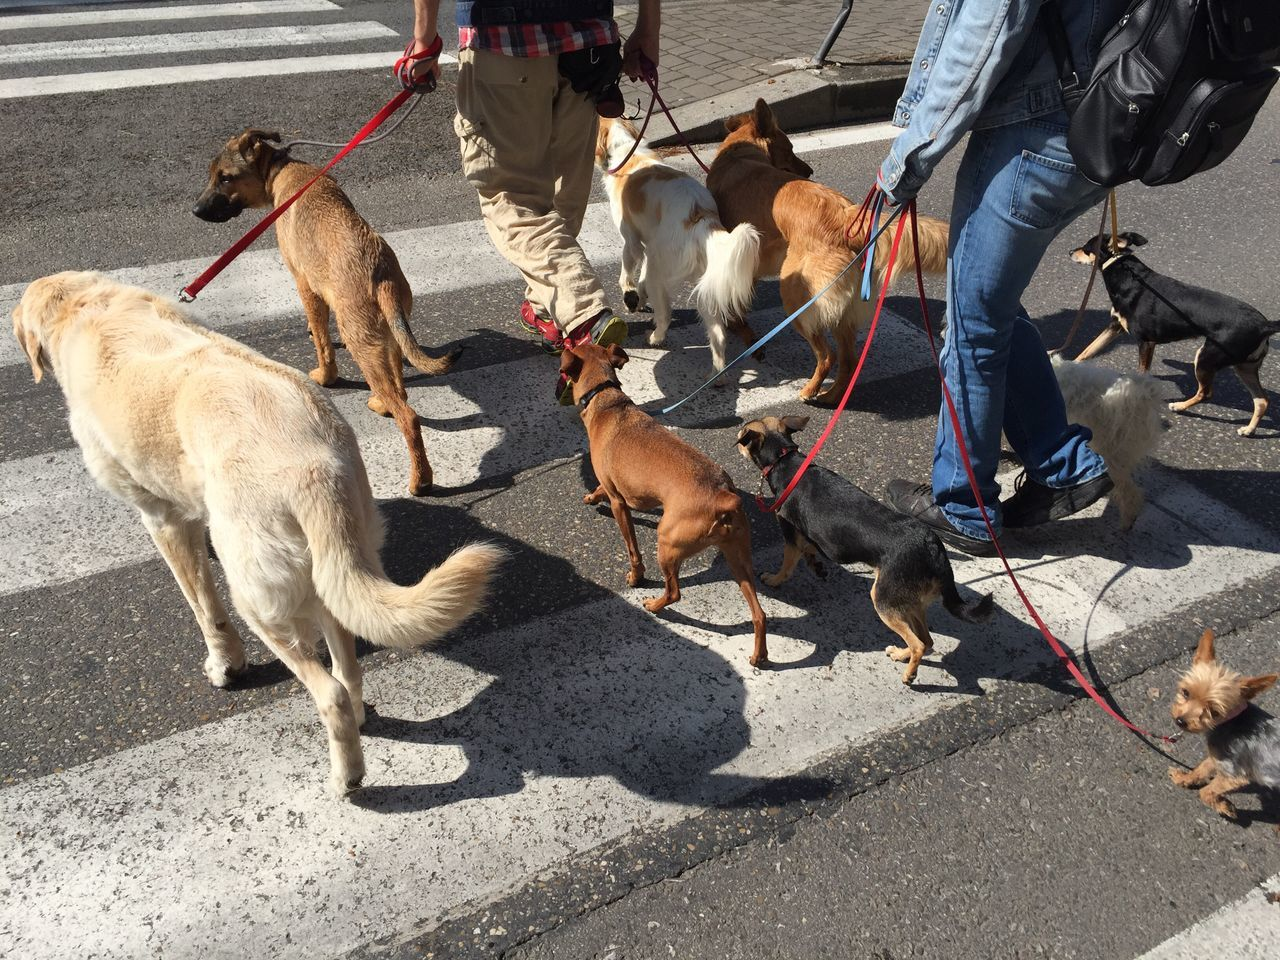 domestic animals, low section, real people, dog, outdoors, mammal, street, men, human leg, pets, day, togetherness, human body part, high angle view, shadow, road, sunlight, occupation, human hand, only men, adult, people